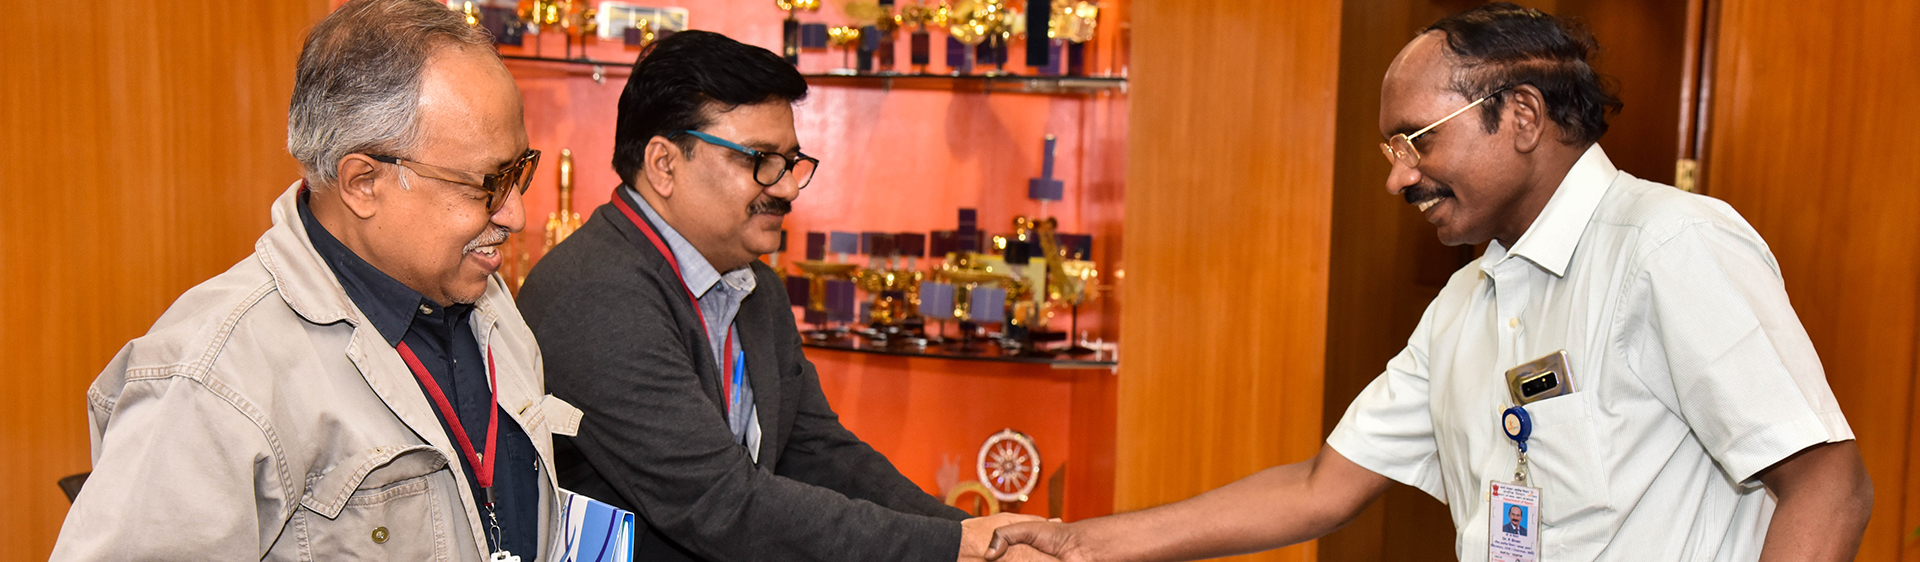 Meeting and interaction with Dr. K Sivan, chairman ISRO at ISRO Headquarters, Bangalore